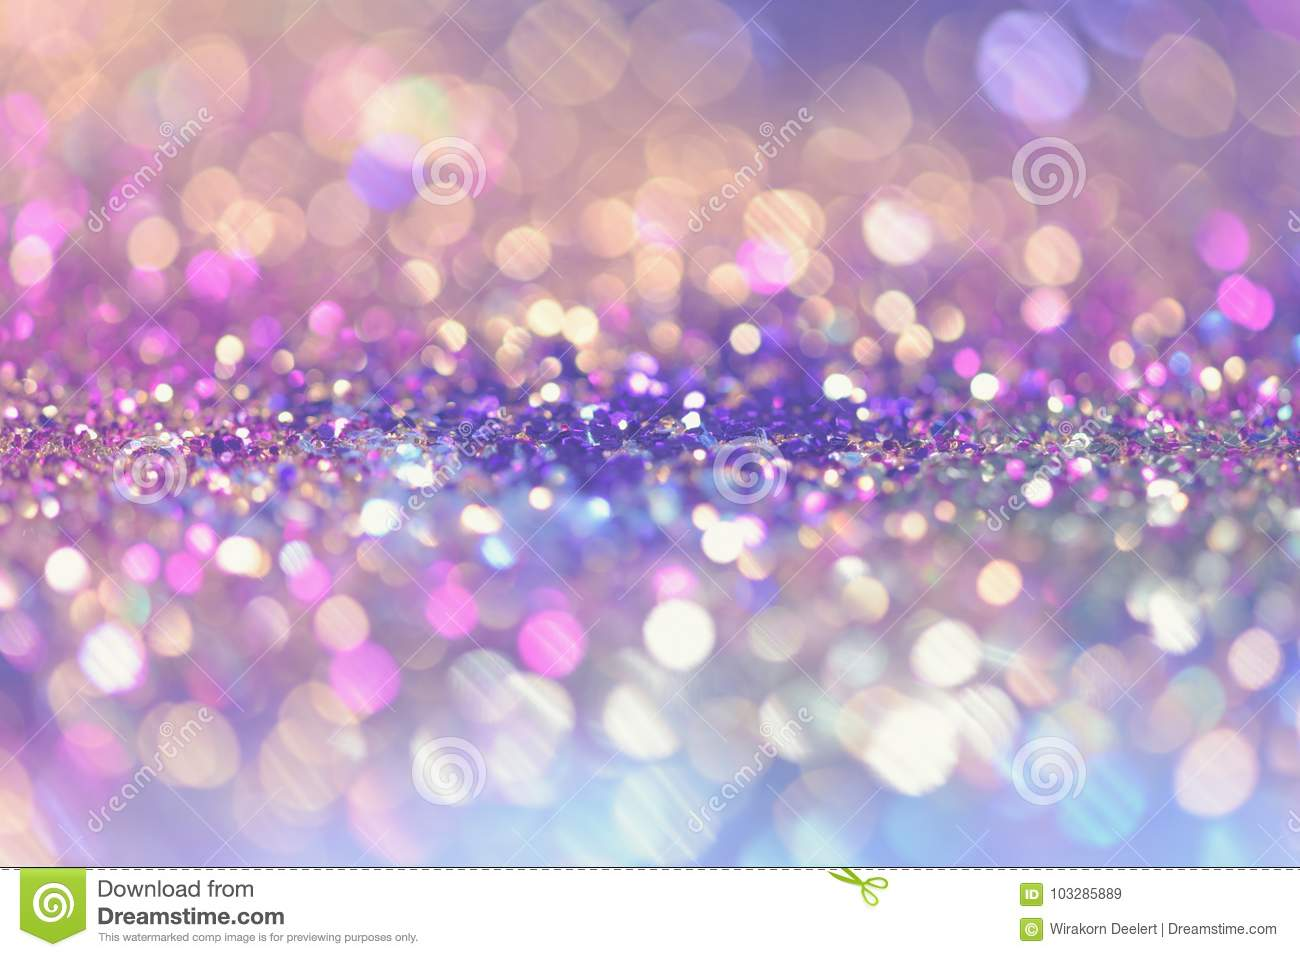 bokeh Colorfull Blurred abstract background for birthday, anniversary, wedding, new year eve or Christmas